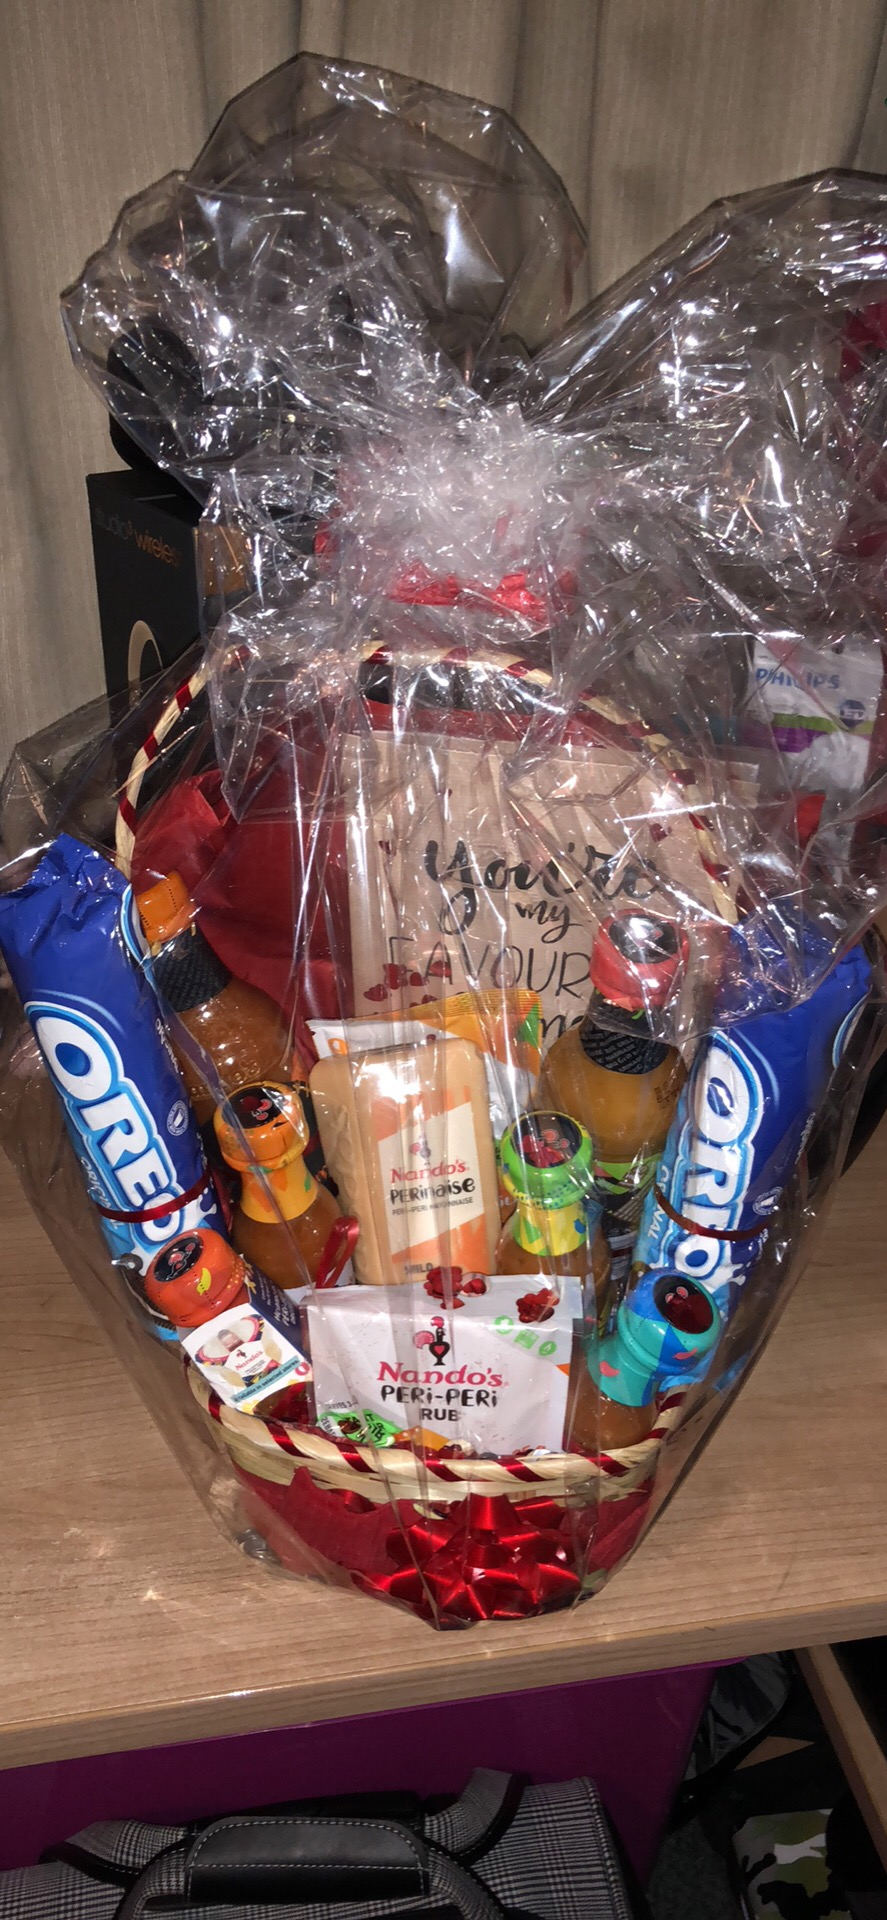 A hamper full of various Nando's sauces and vouchers, and Oreo cookies.